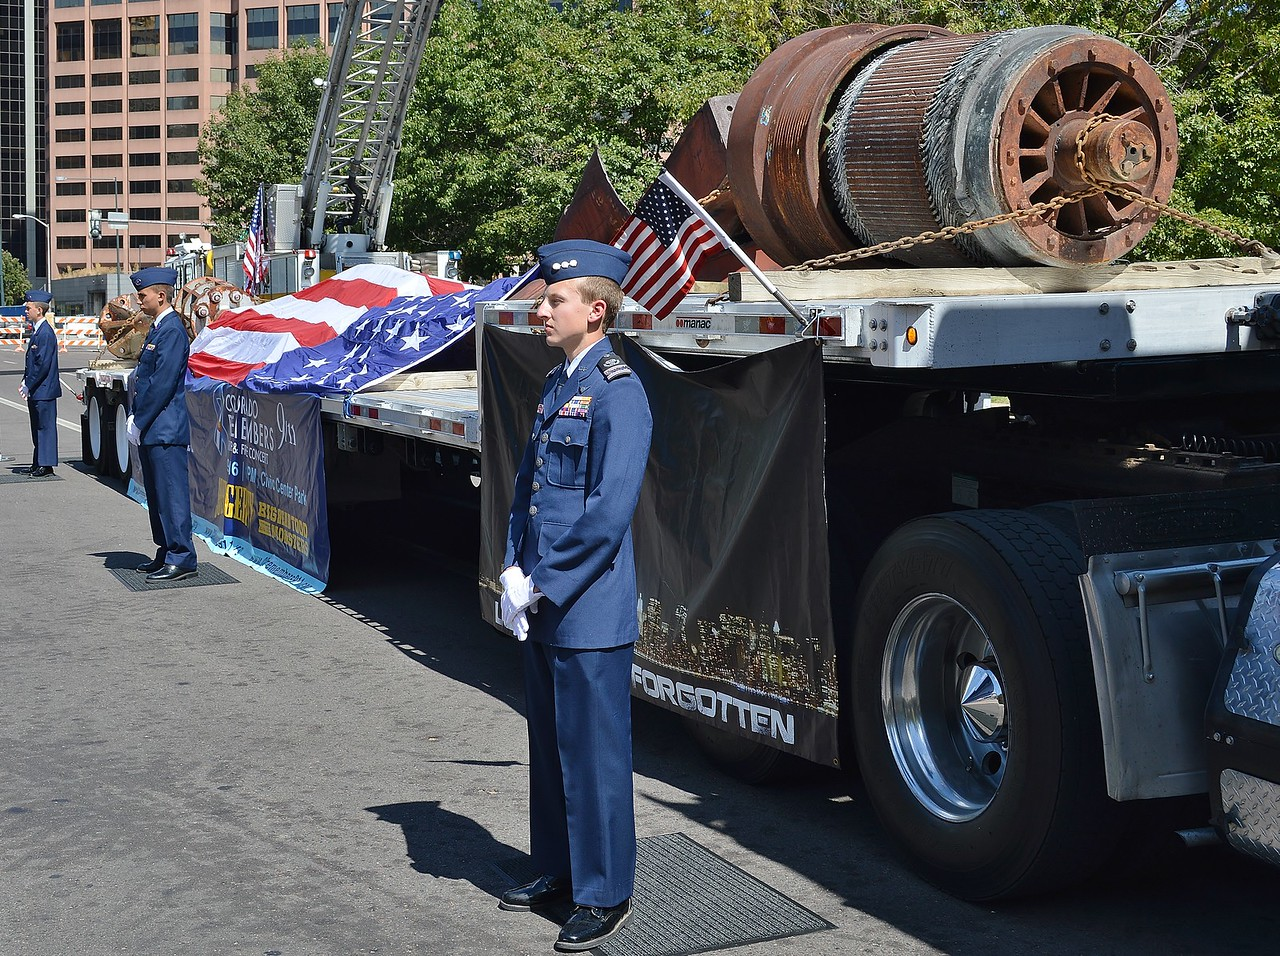 Members of US Air Force standing in front of 9/11 wreckage displayed on flatbed truck.